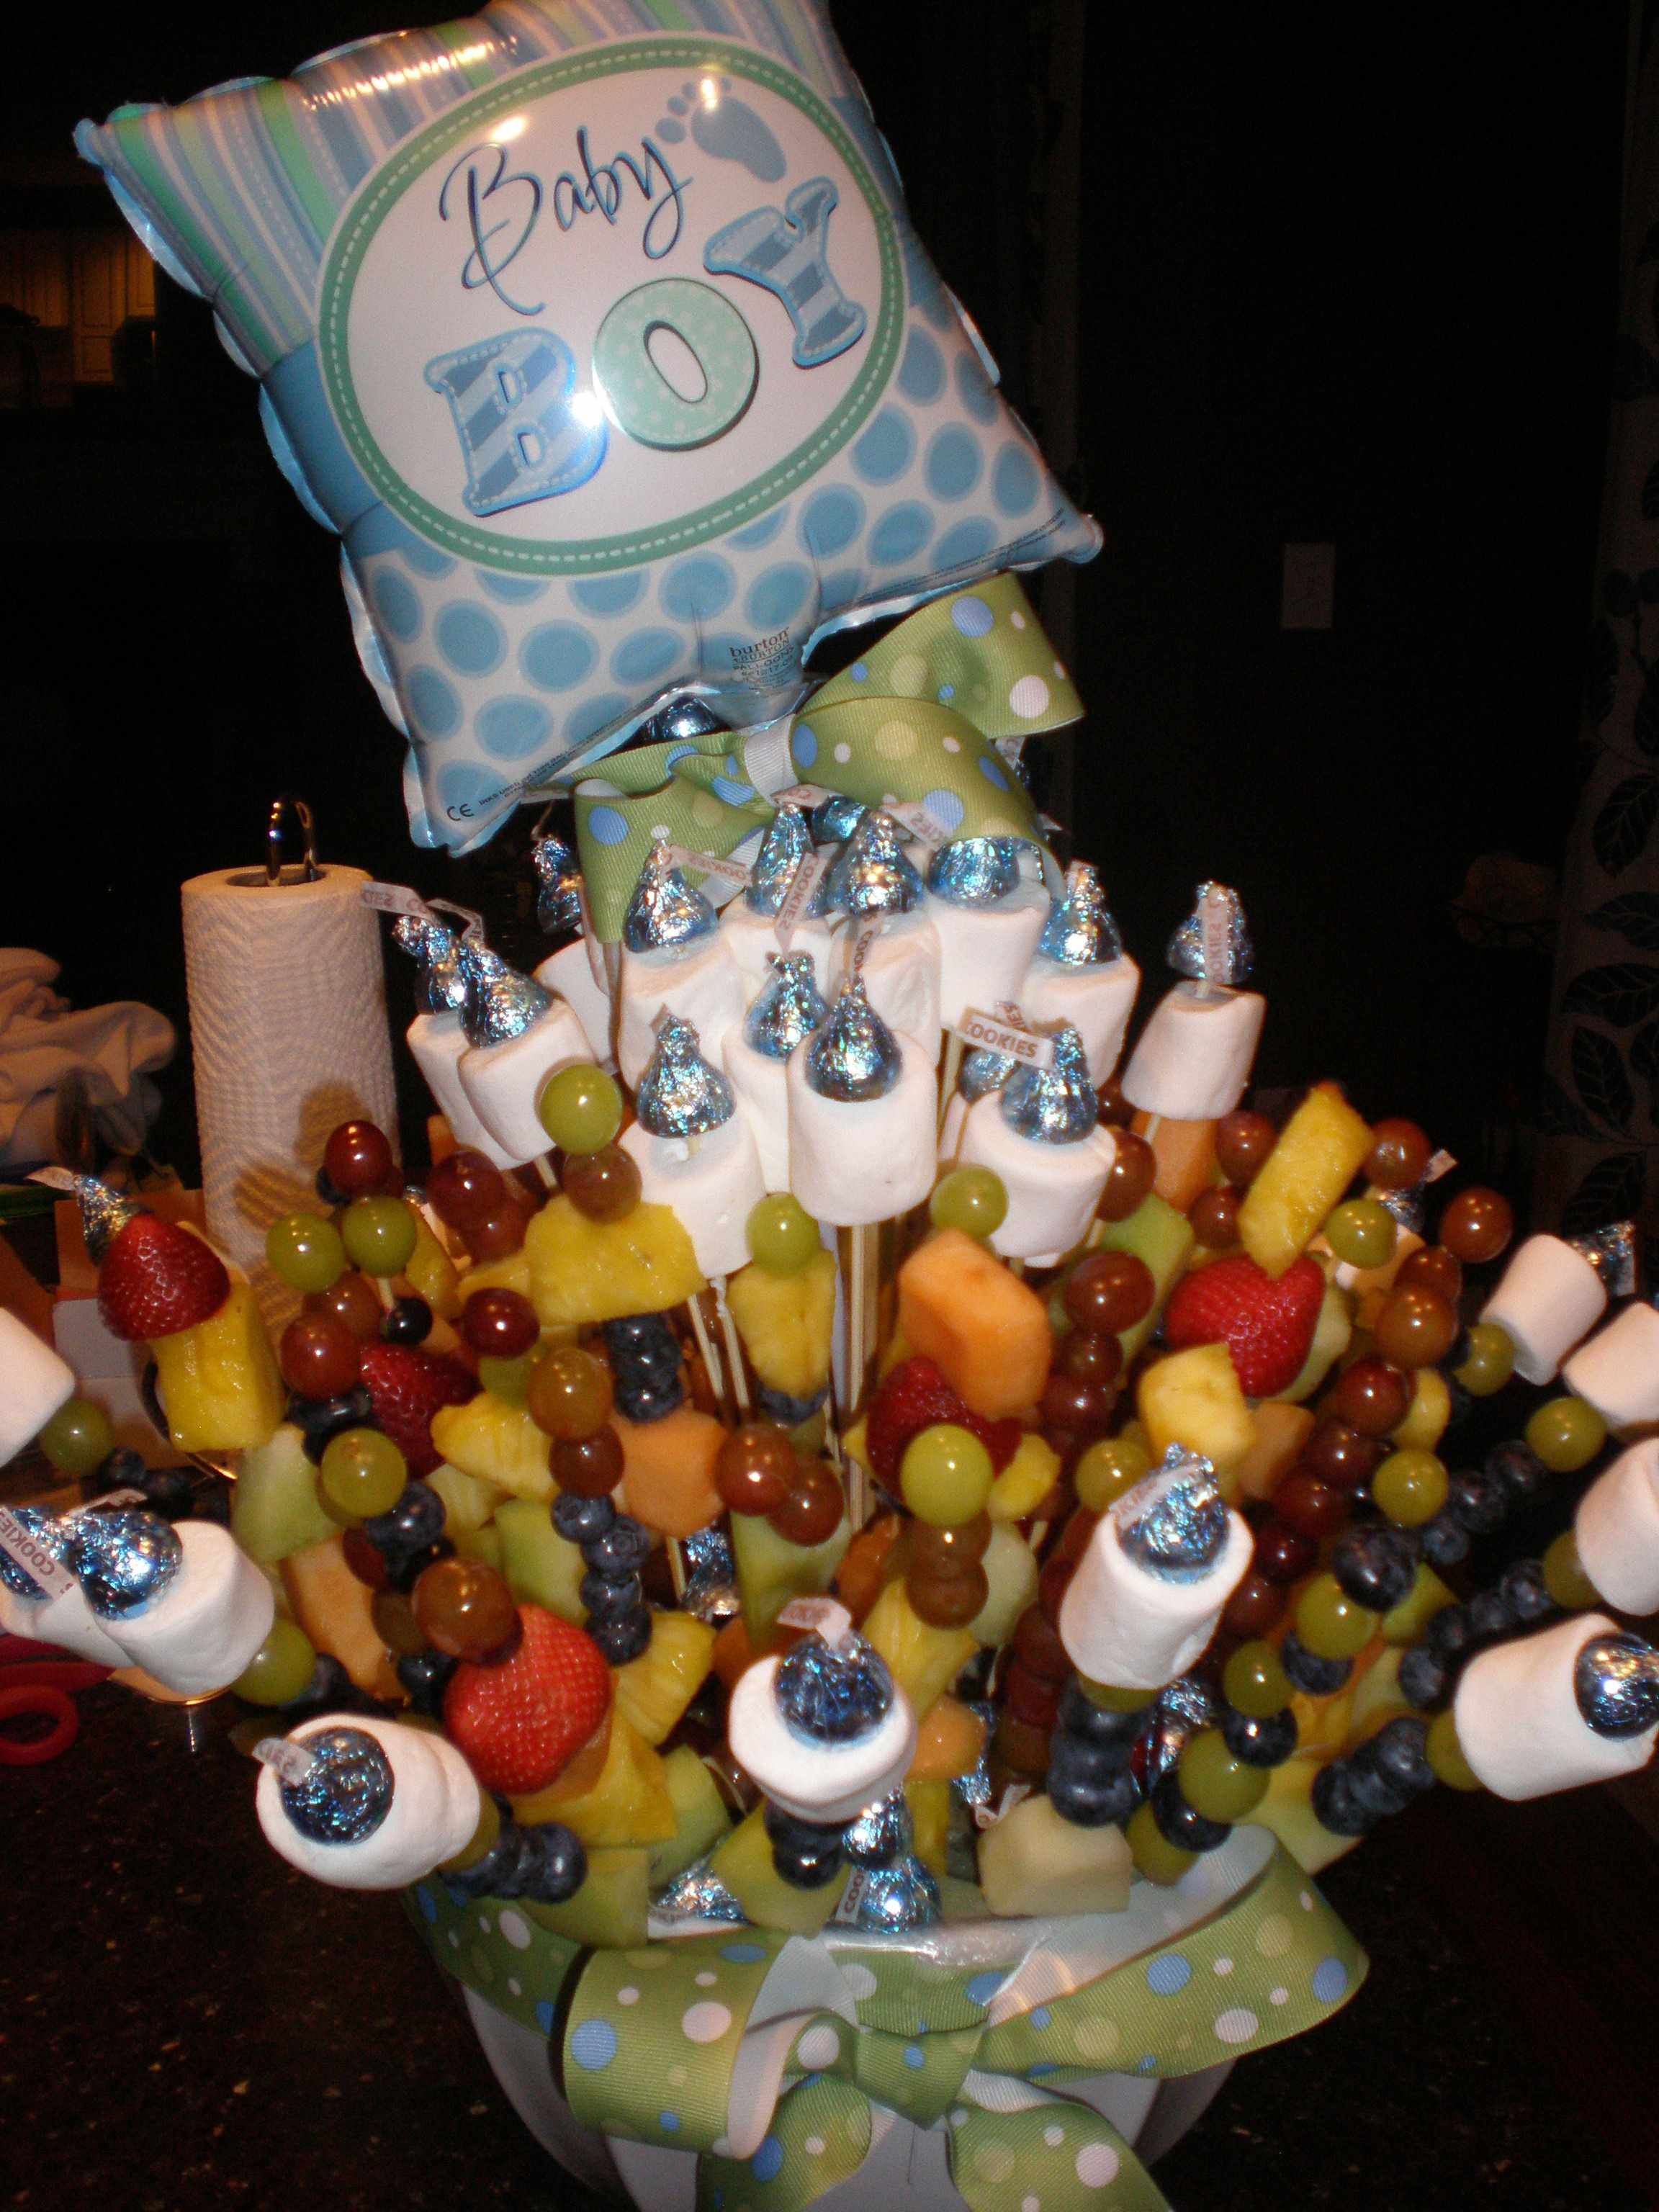 Edible Arrangements Diy For Boy Baby Shower Used Marshmallow And